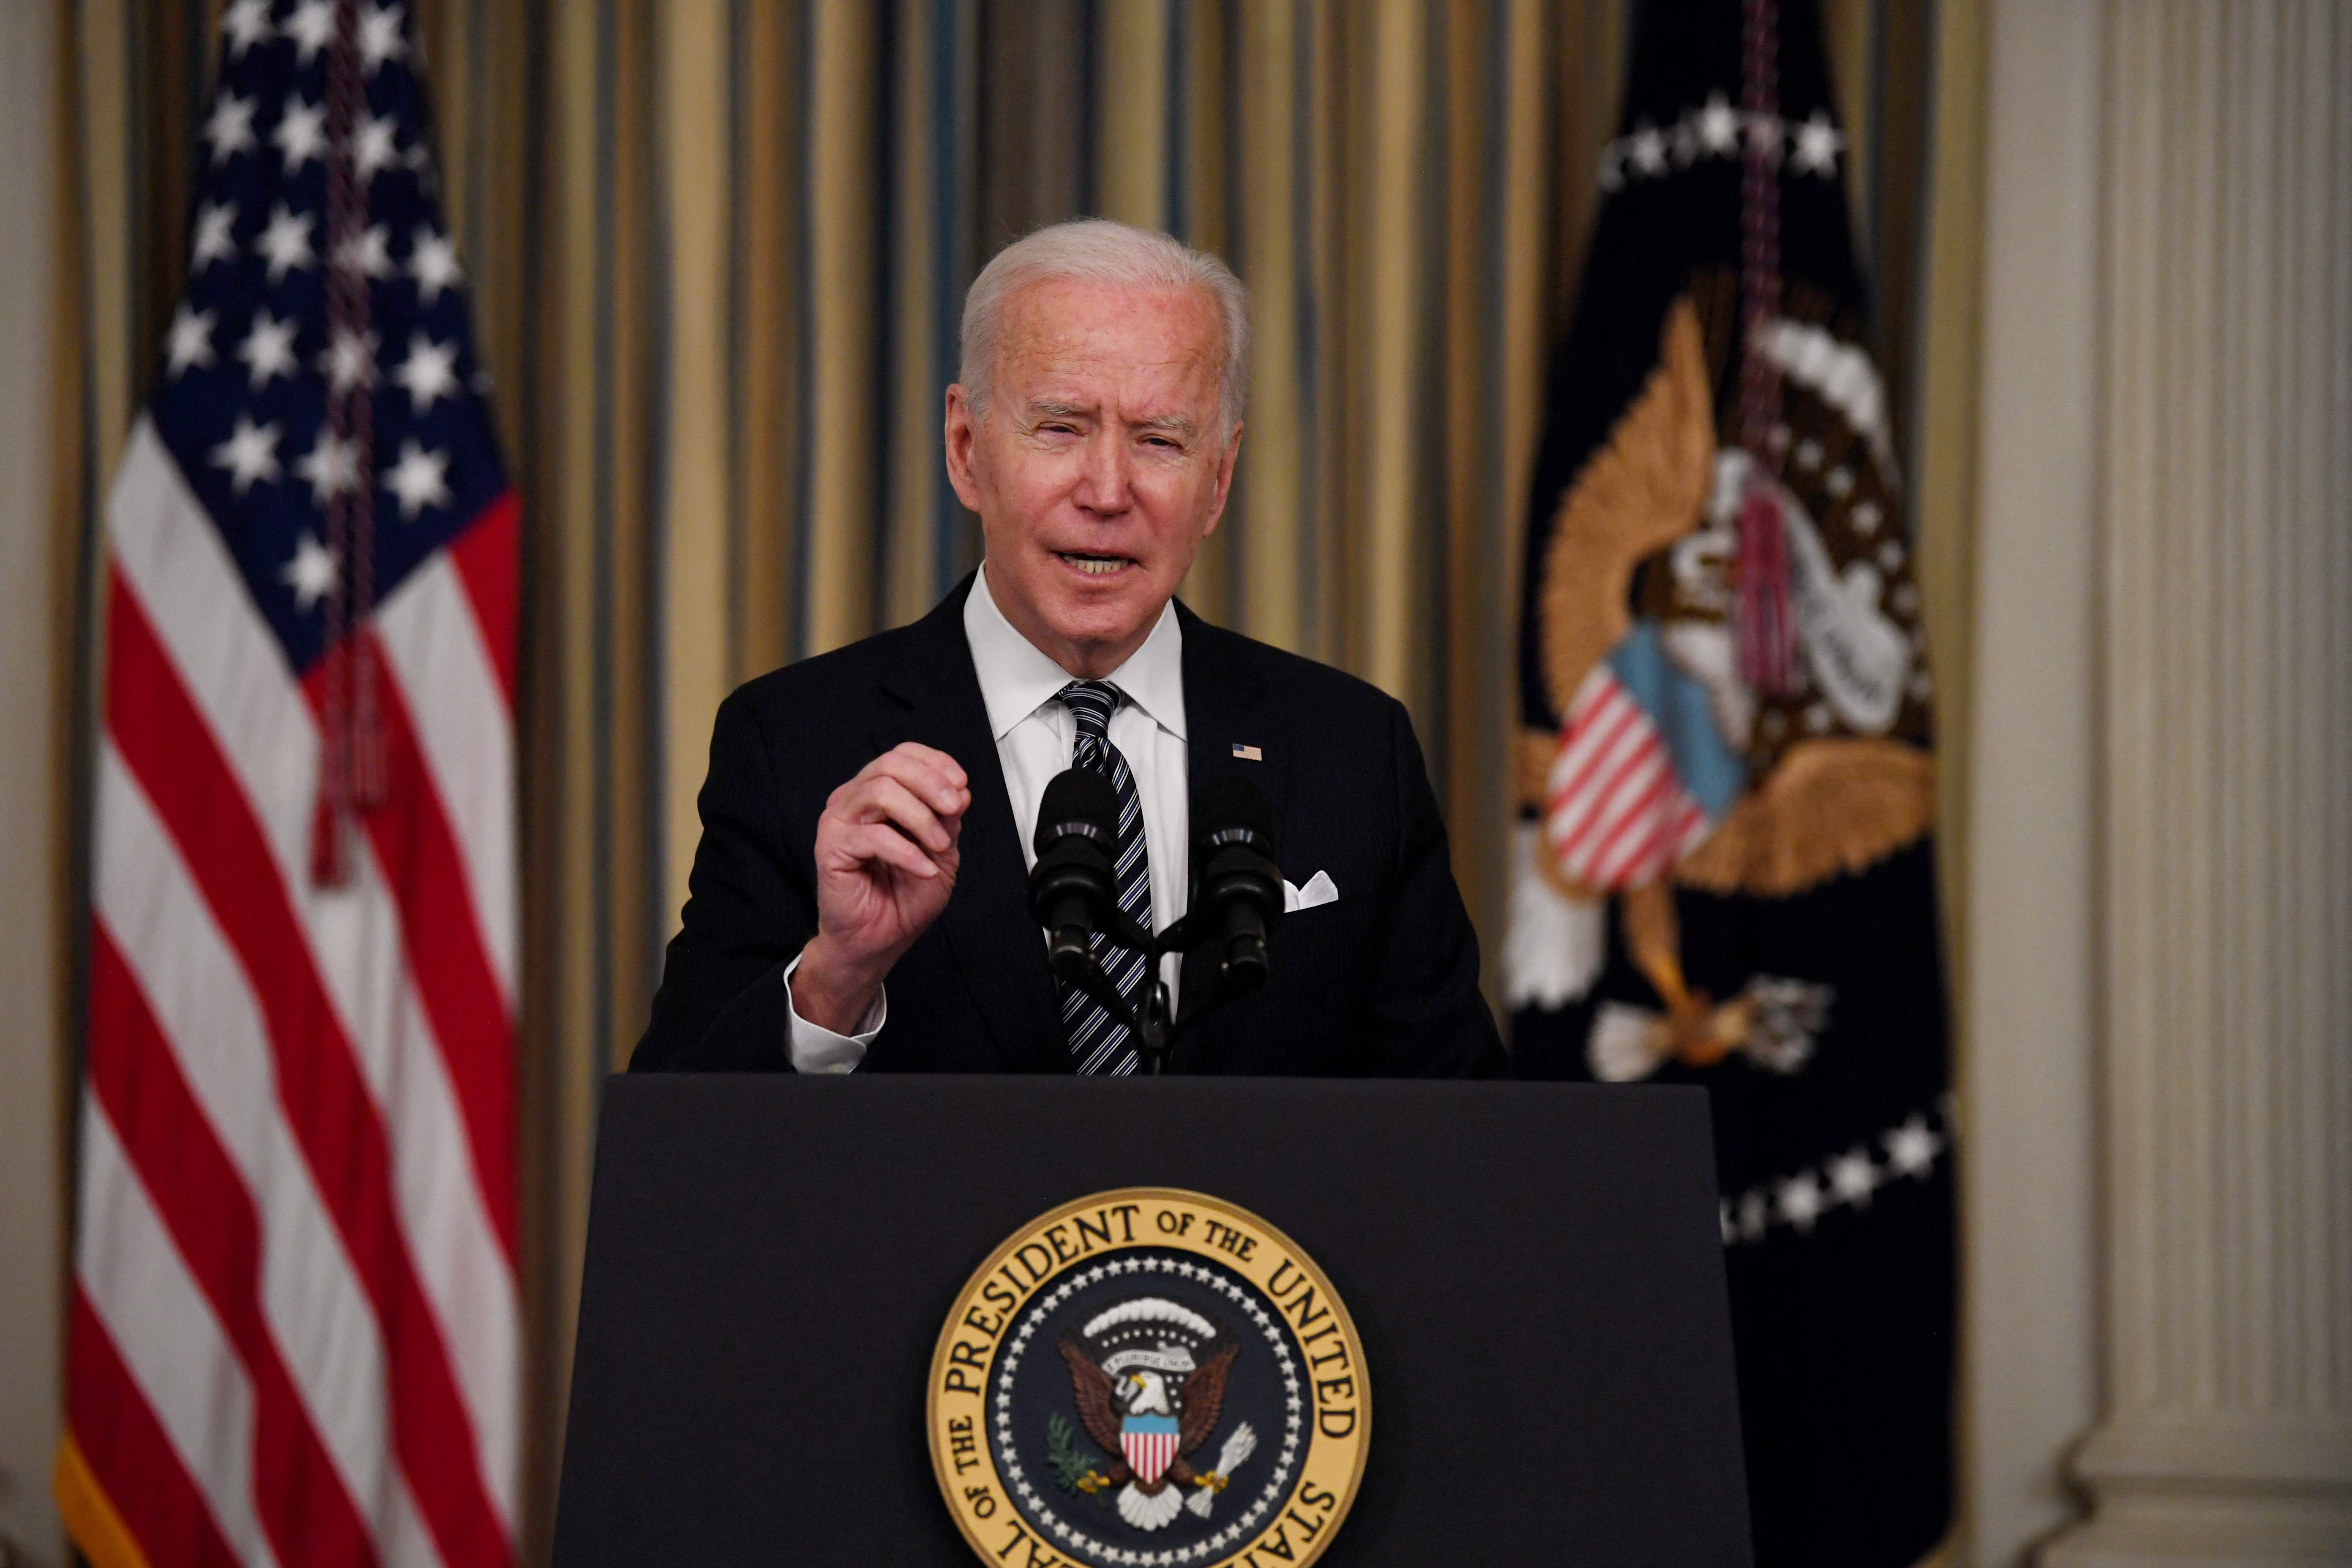 President Joe Biden speaks about implementation of the American Rescue Plan at the White House last week.